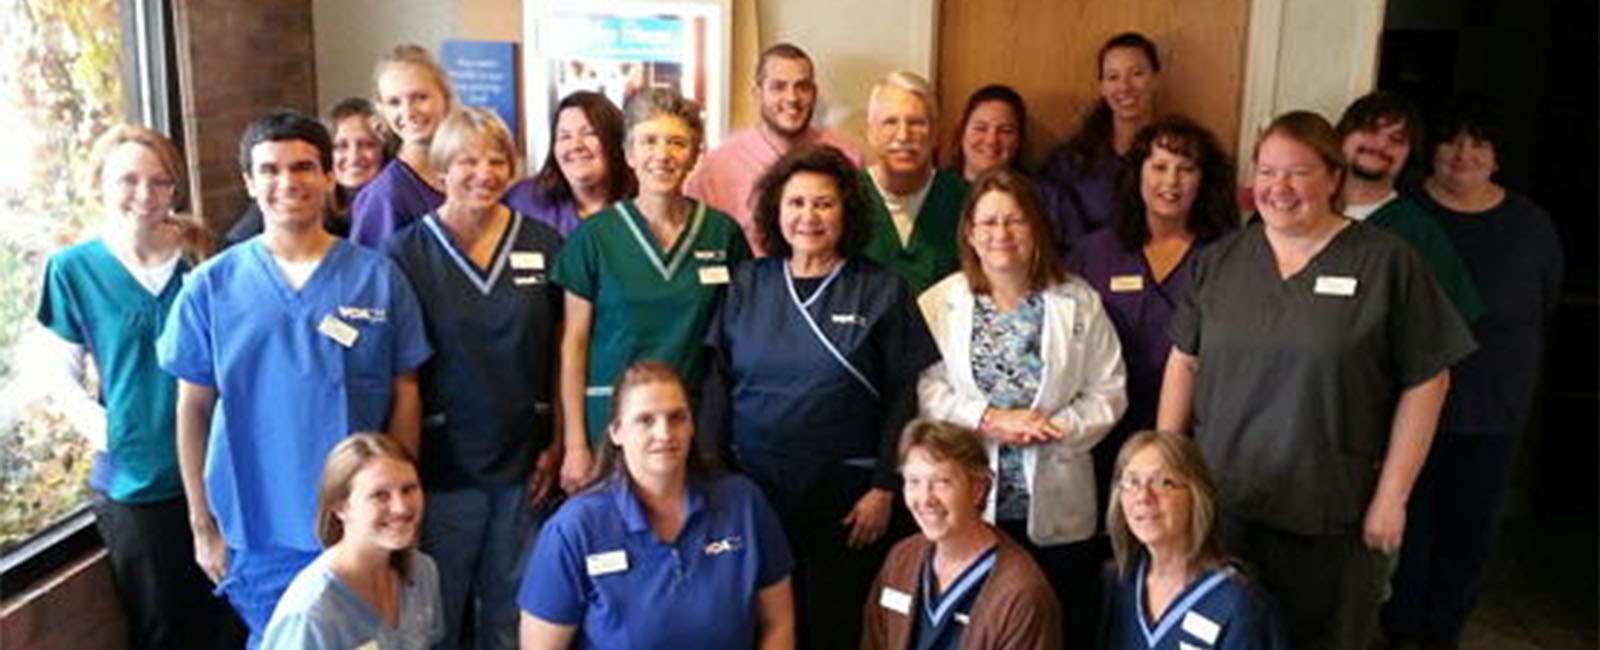 Homepage Team Picture of VCA Boulder Terrace Animal Hospital